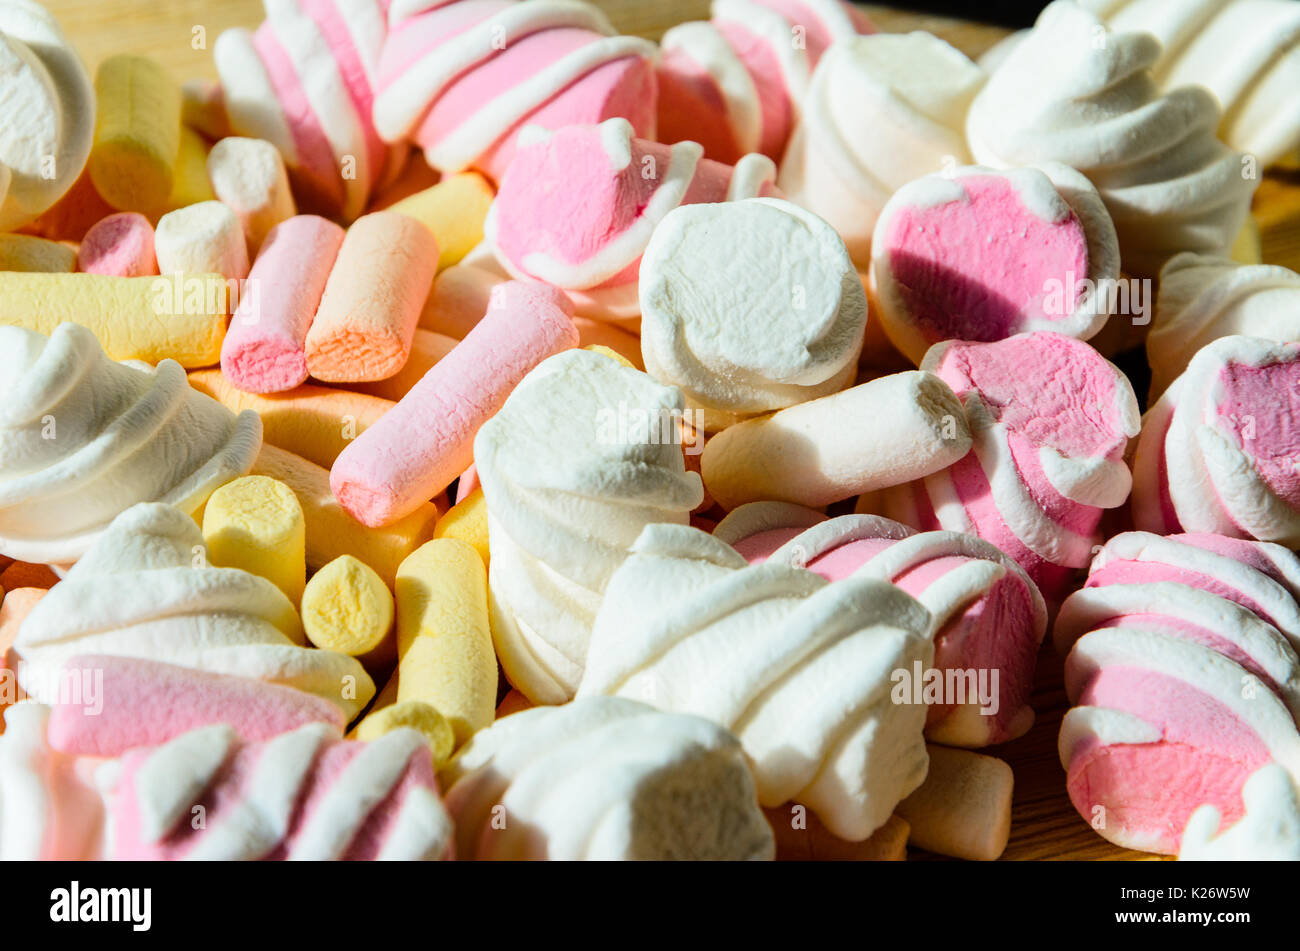 Multicolored Marshmallow Background - Stock Image